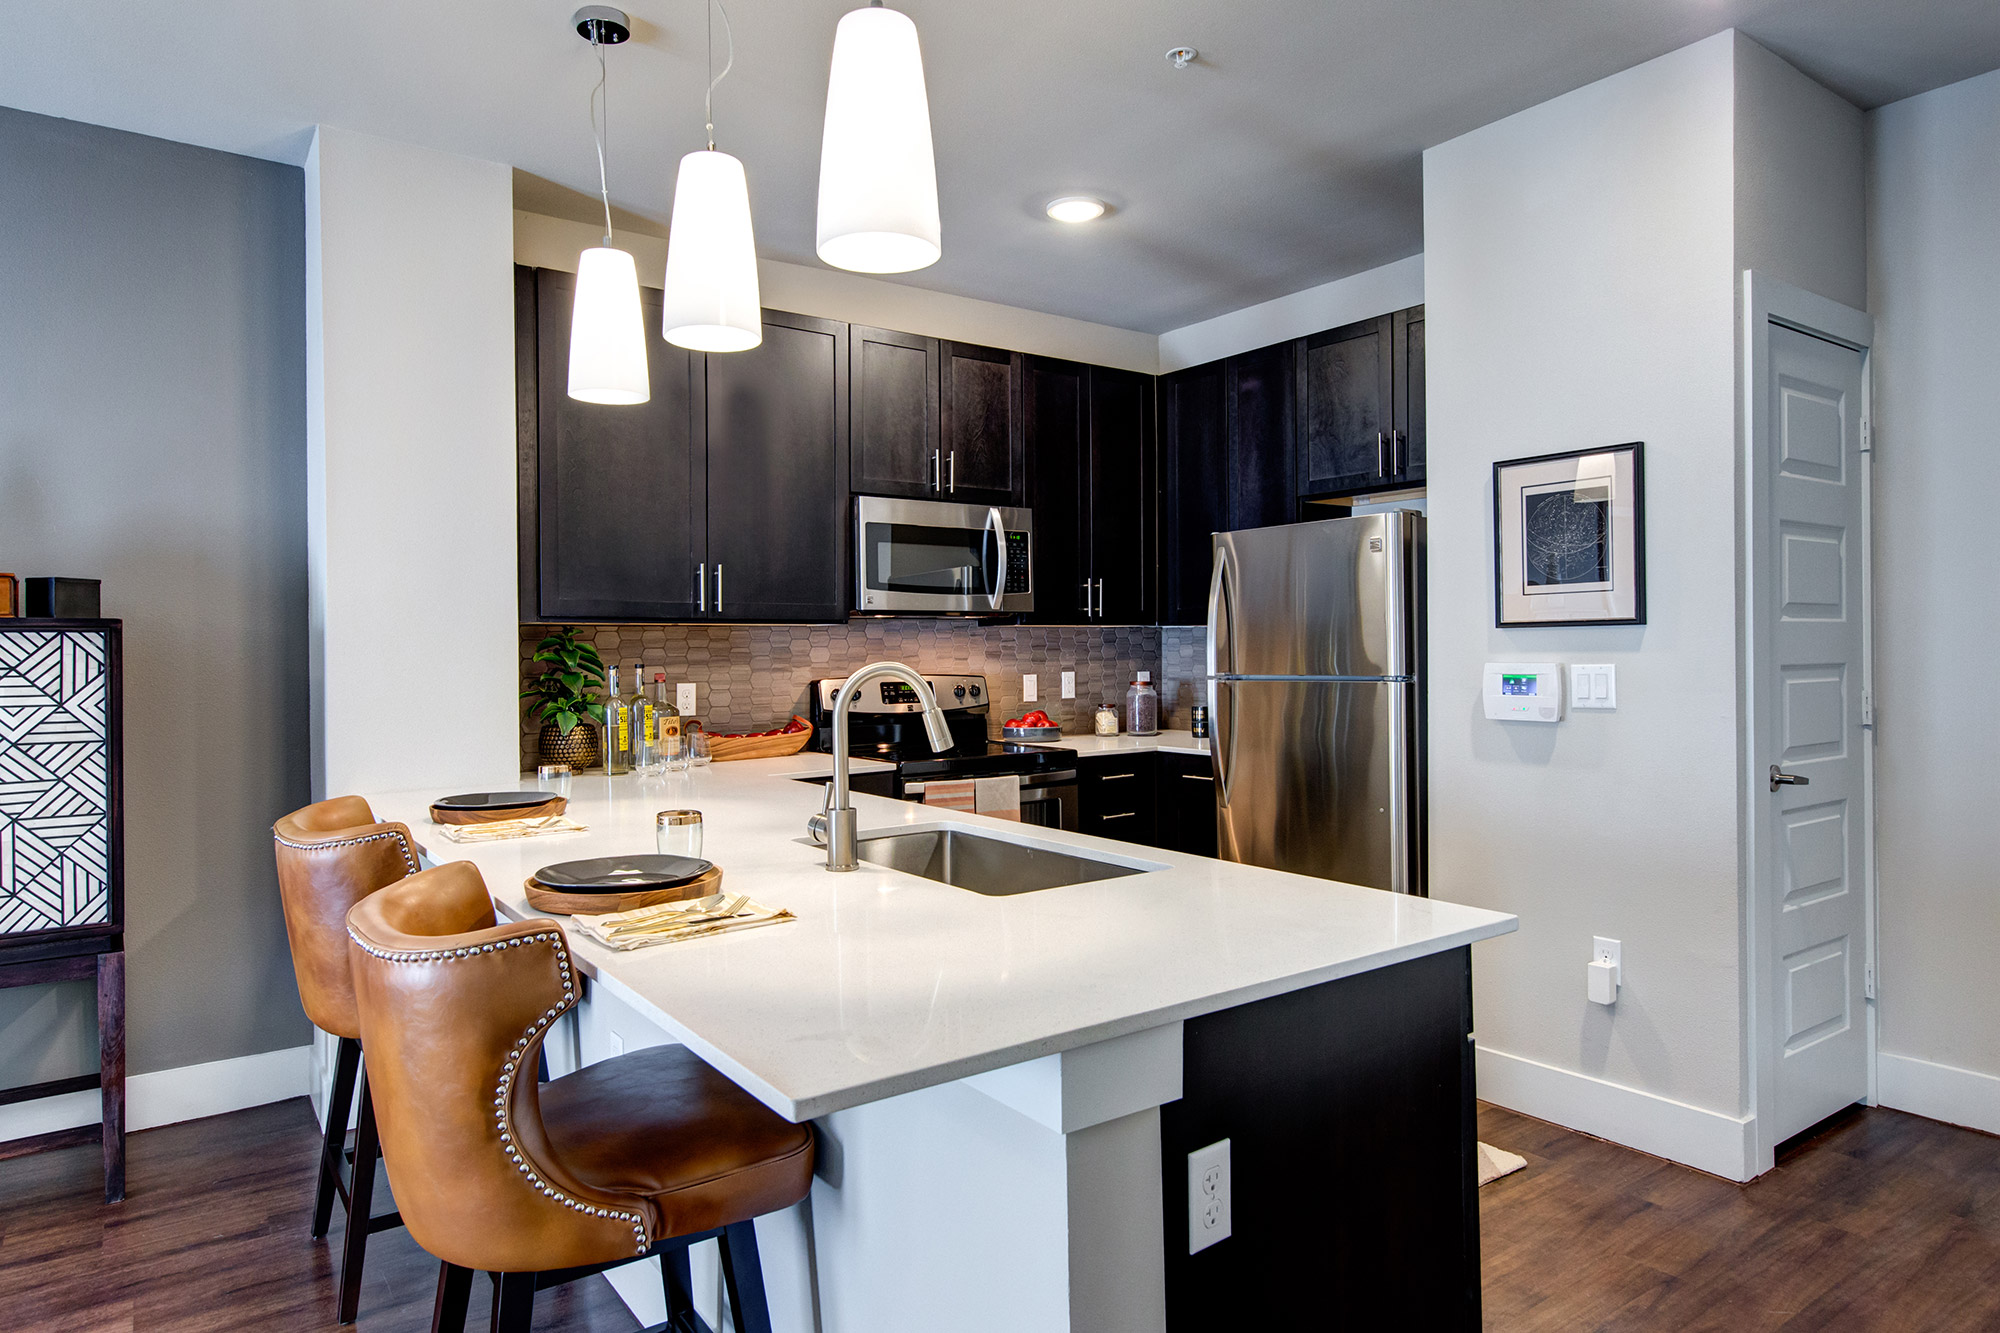 Kitchen with quartz counters and bar style seating, stainless steel appliances, pantry and designer lighting